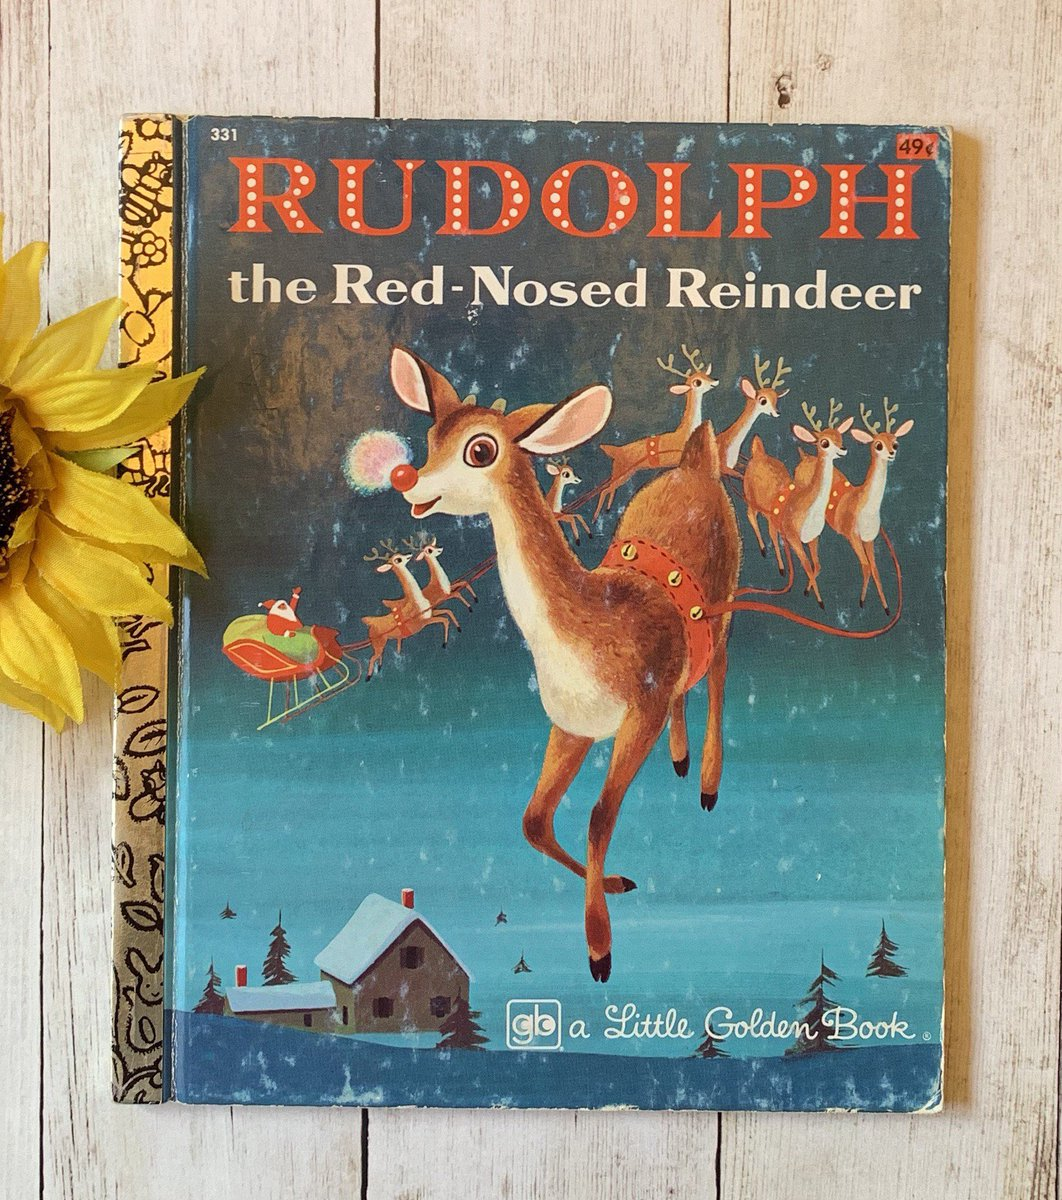 Vintage 1975 Rudolph the Red-Nosed Reindeer, Golden Book, Children's Book, Vintage Christmas, Christmas Book, Christmas Story, Junk Journal #etsy #blue #birthday #christmas  #richardscarry #christmasephemera #christmasdecor #bedtimestory #christmasbook https://etsy.me/2PShcrP pic.twitter.com/U54JxLIn3W